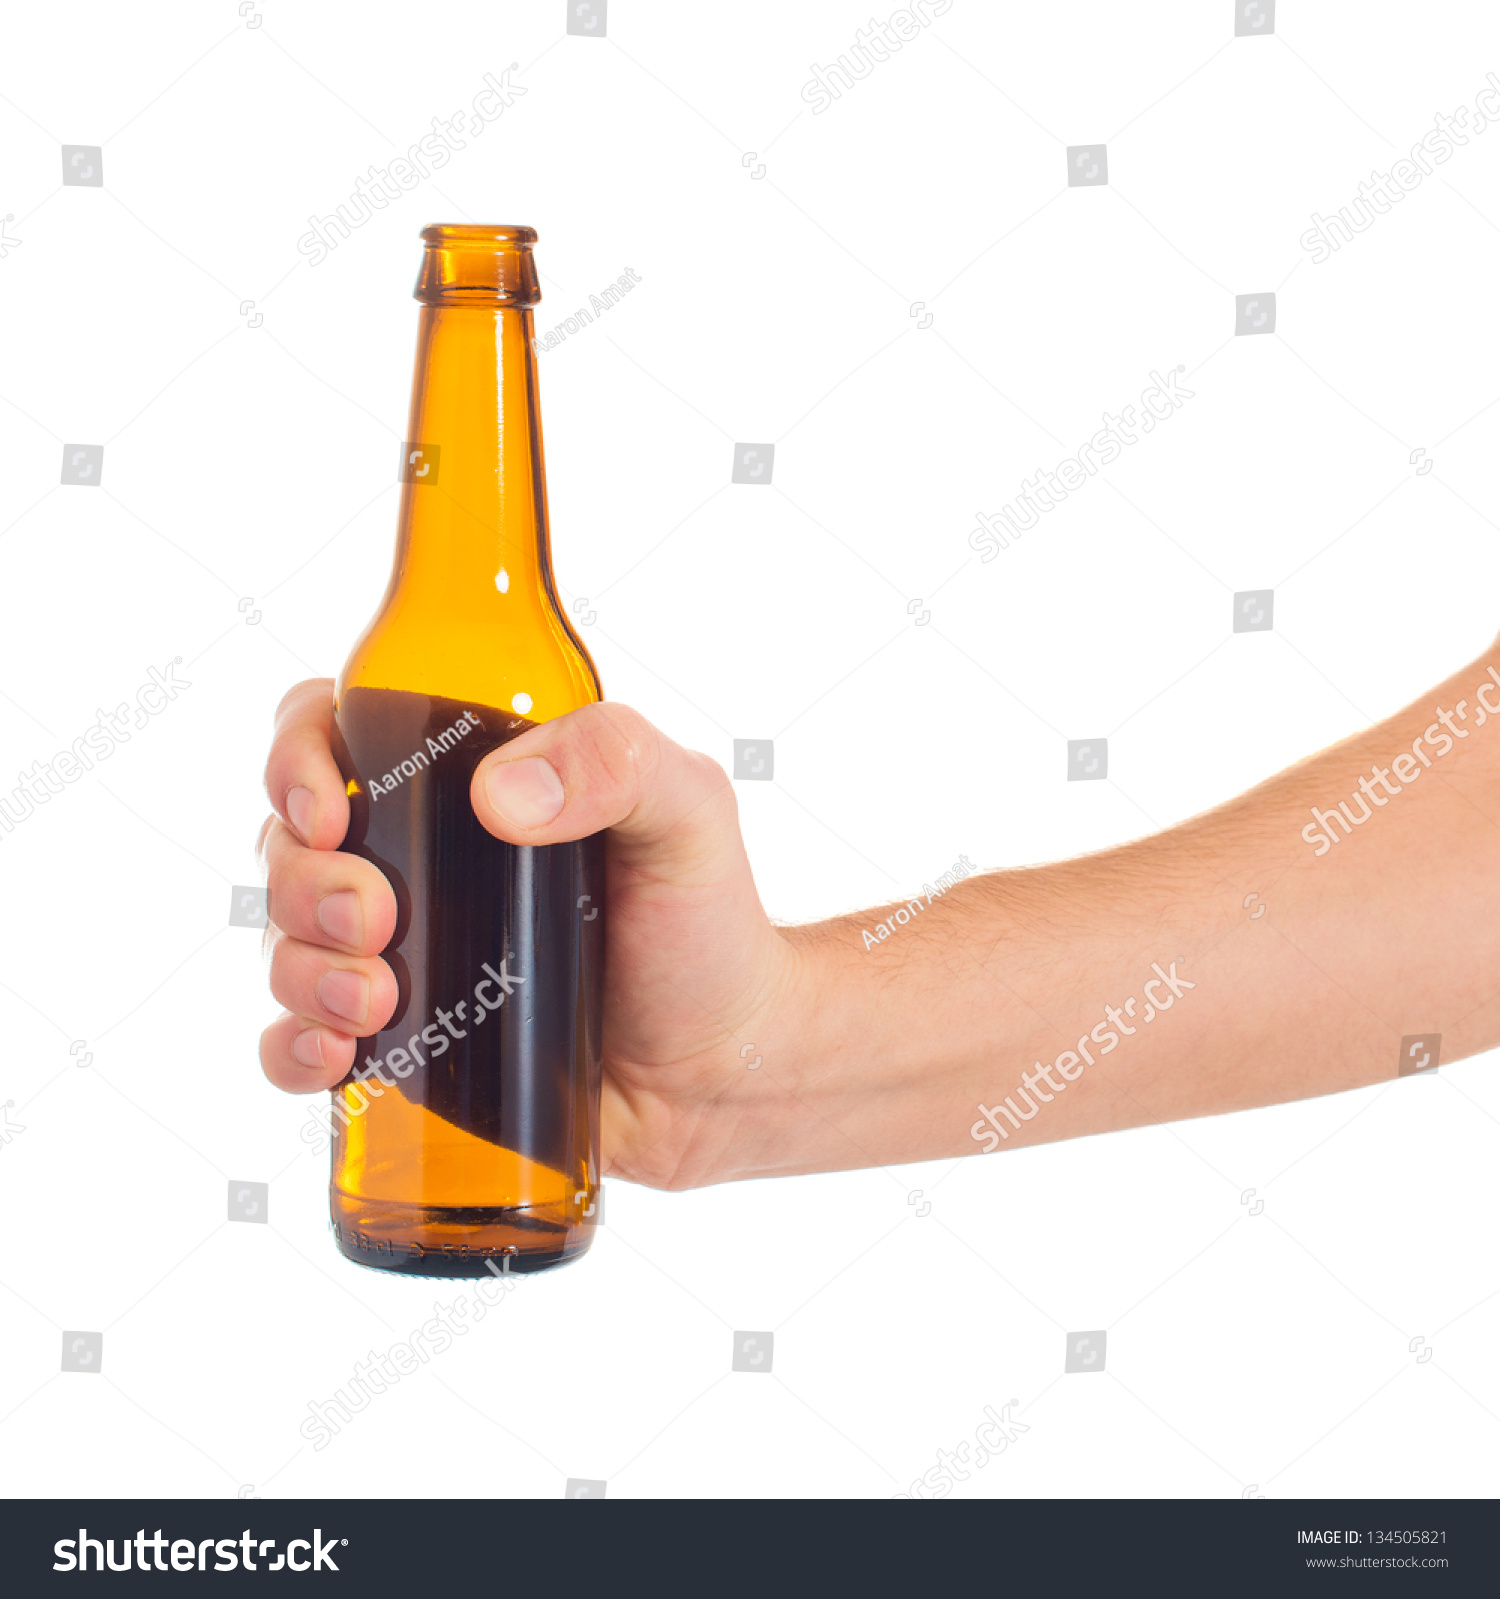 pussy with beer bottle in it close up